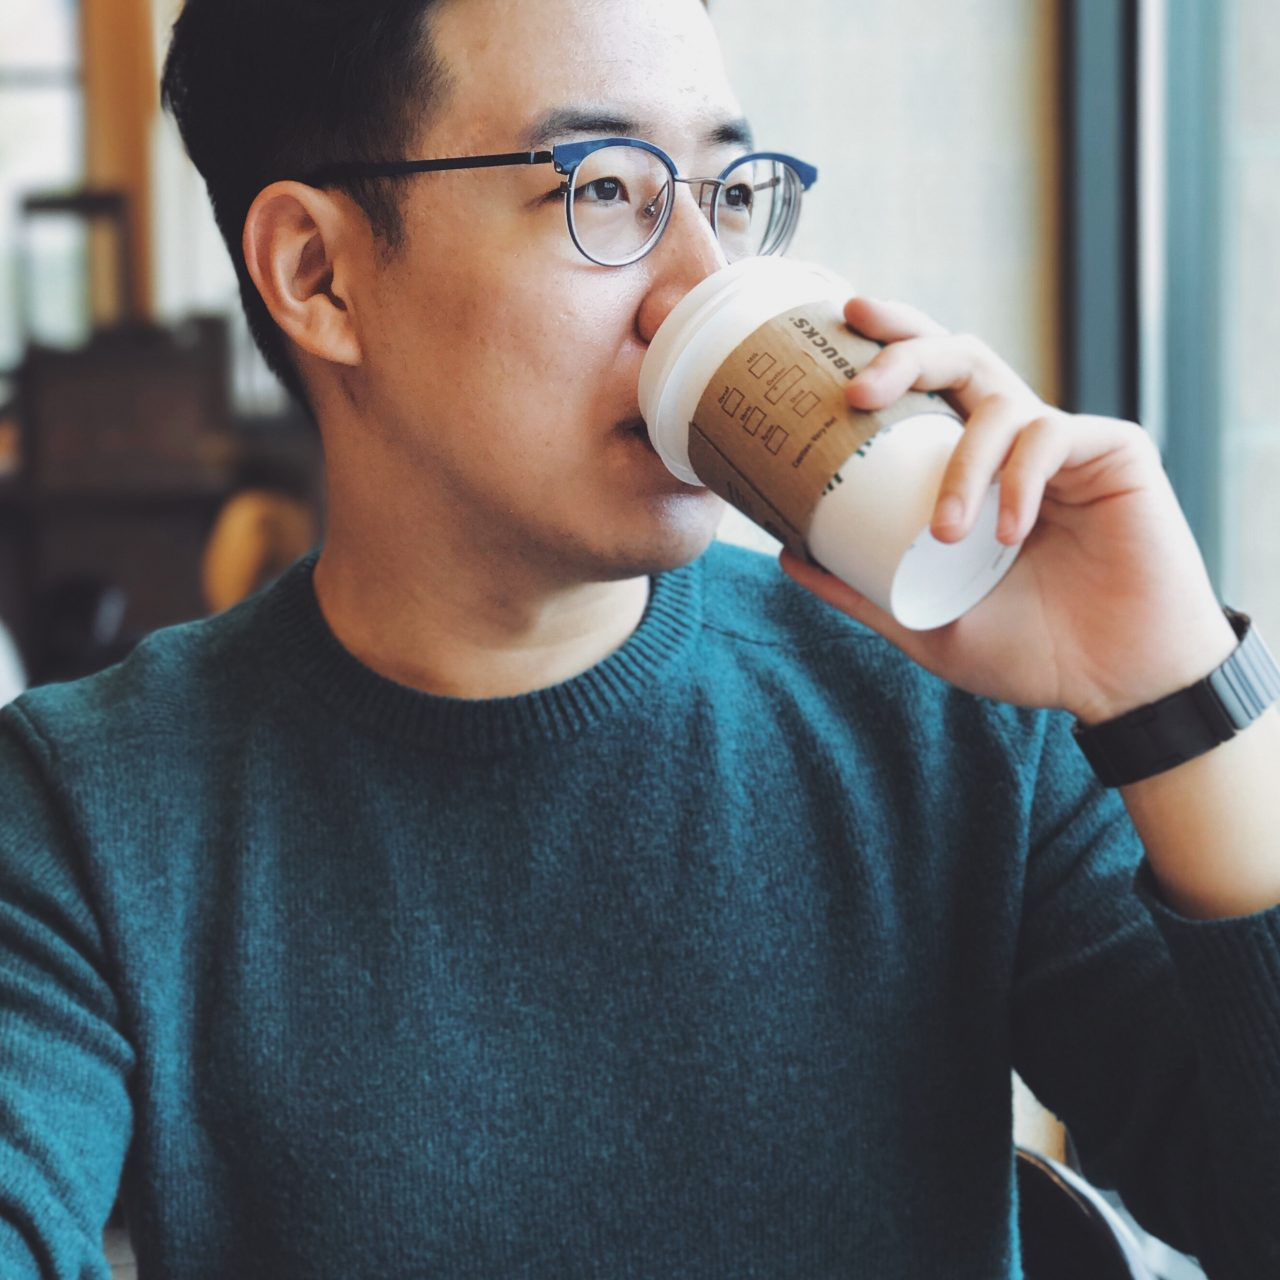 When Shao Jie's mother isn't looking, he tells the barista his name is Barnabus.